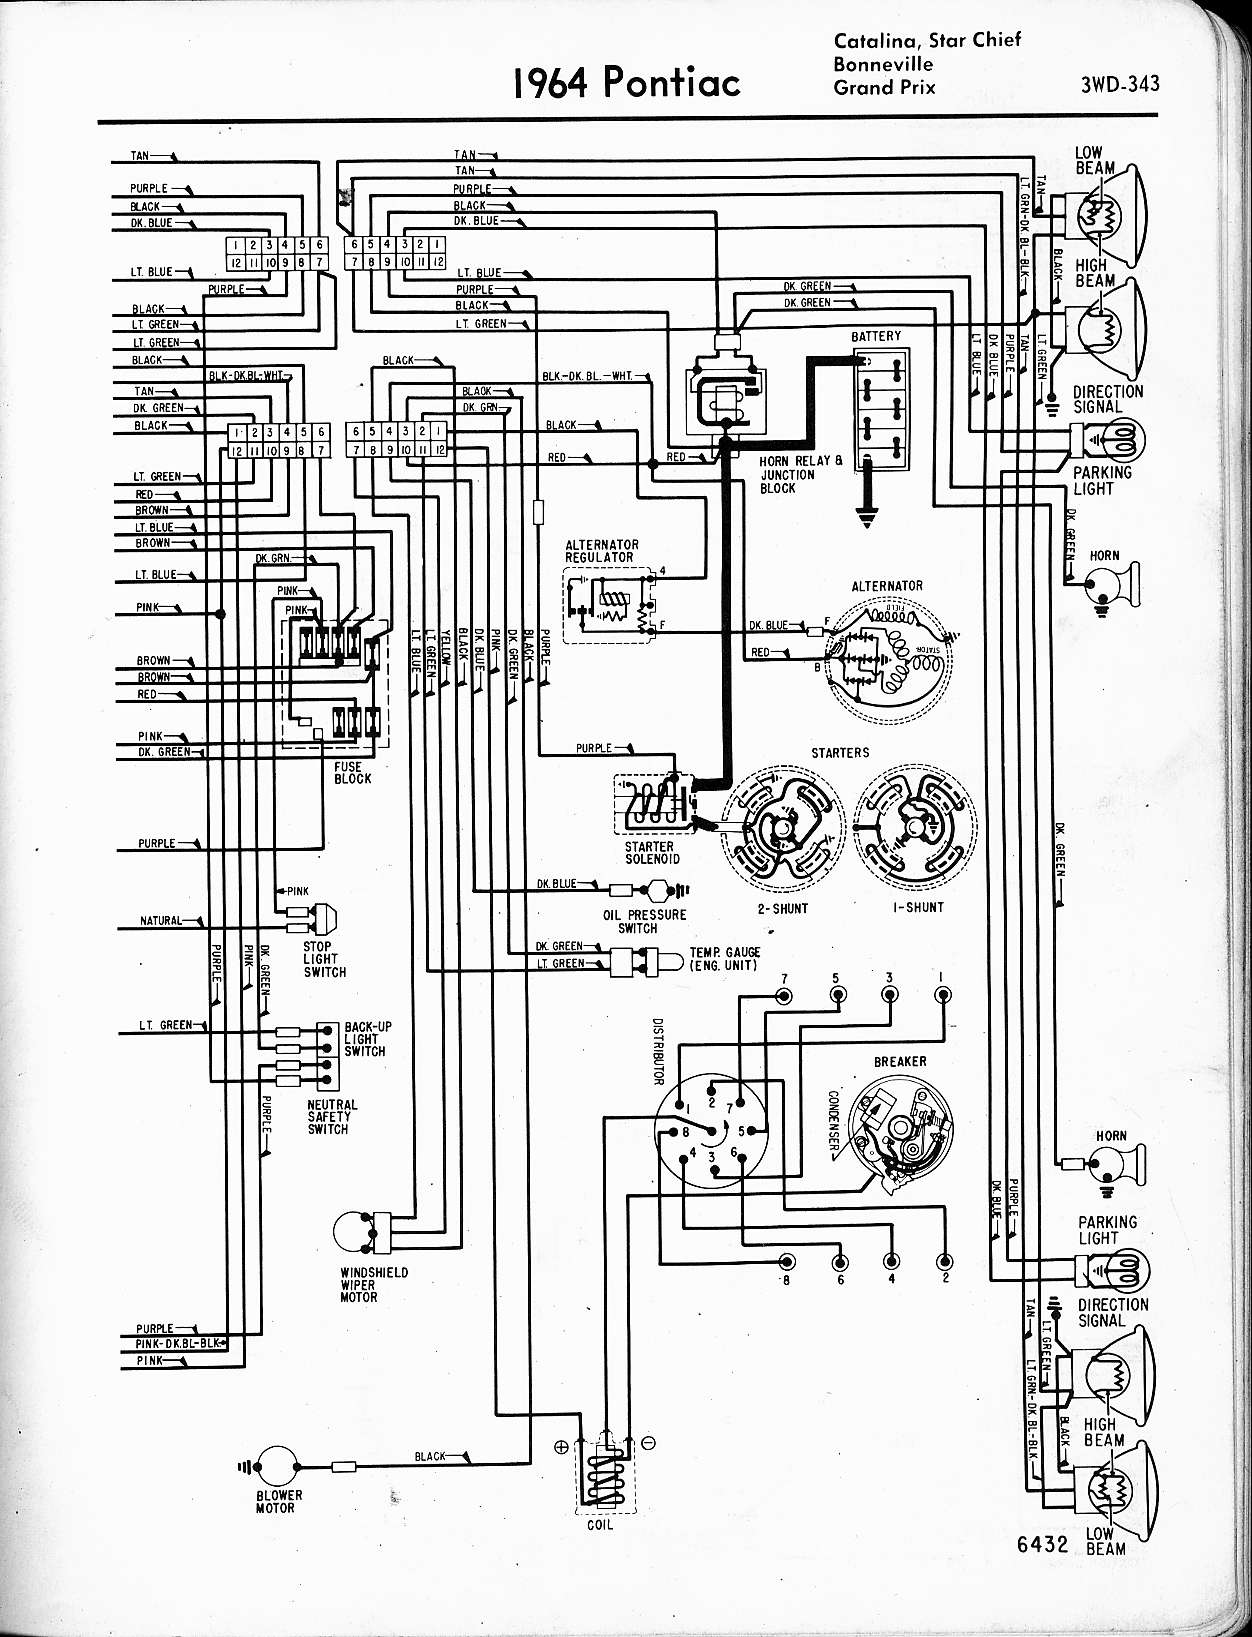 2004 gto wiring harness diagram wiring diagram rh 37 raepoppweiss de